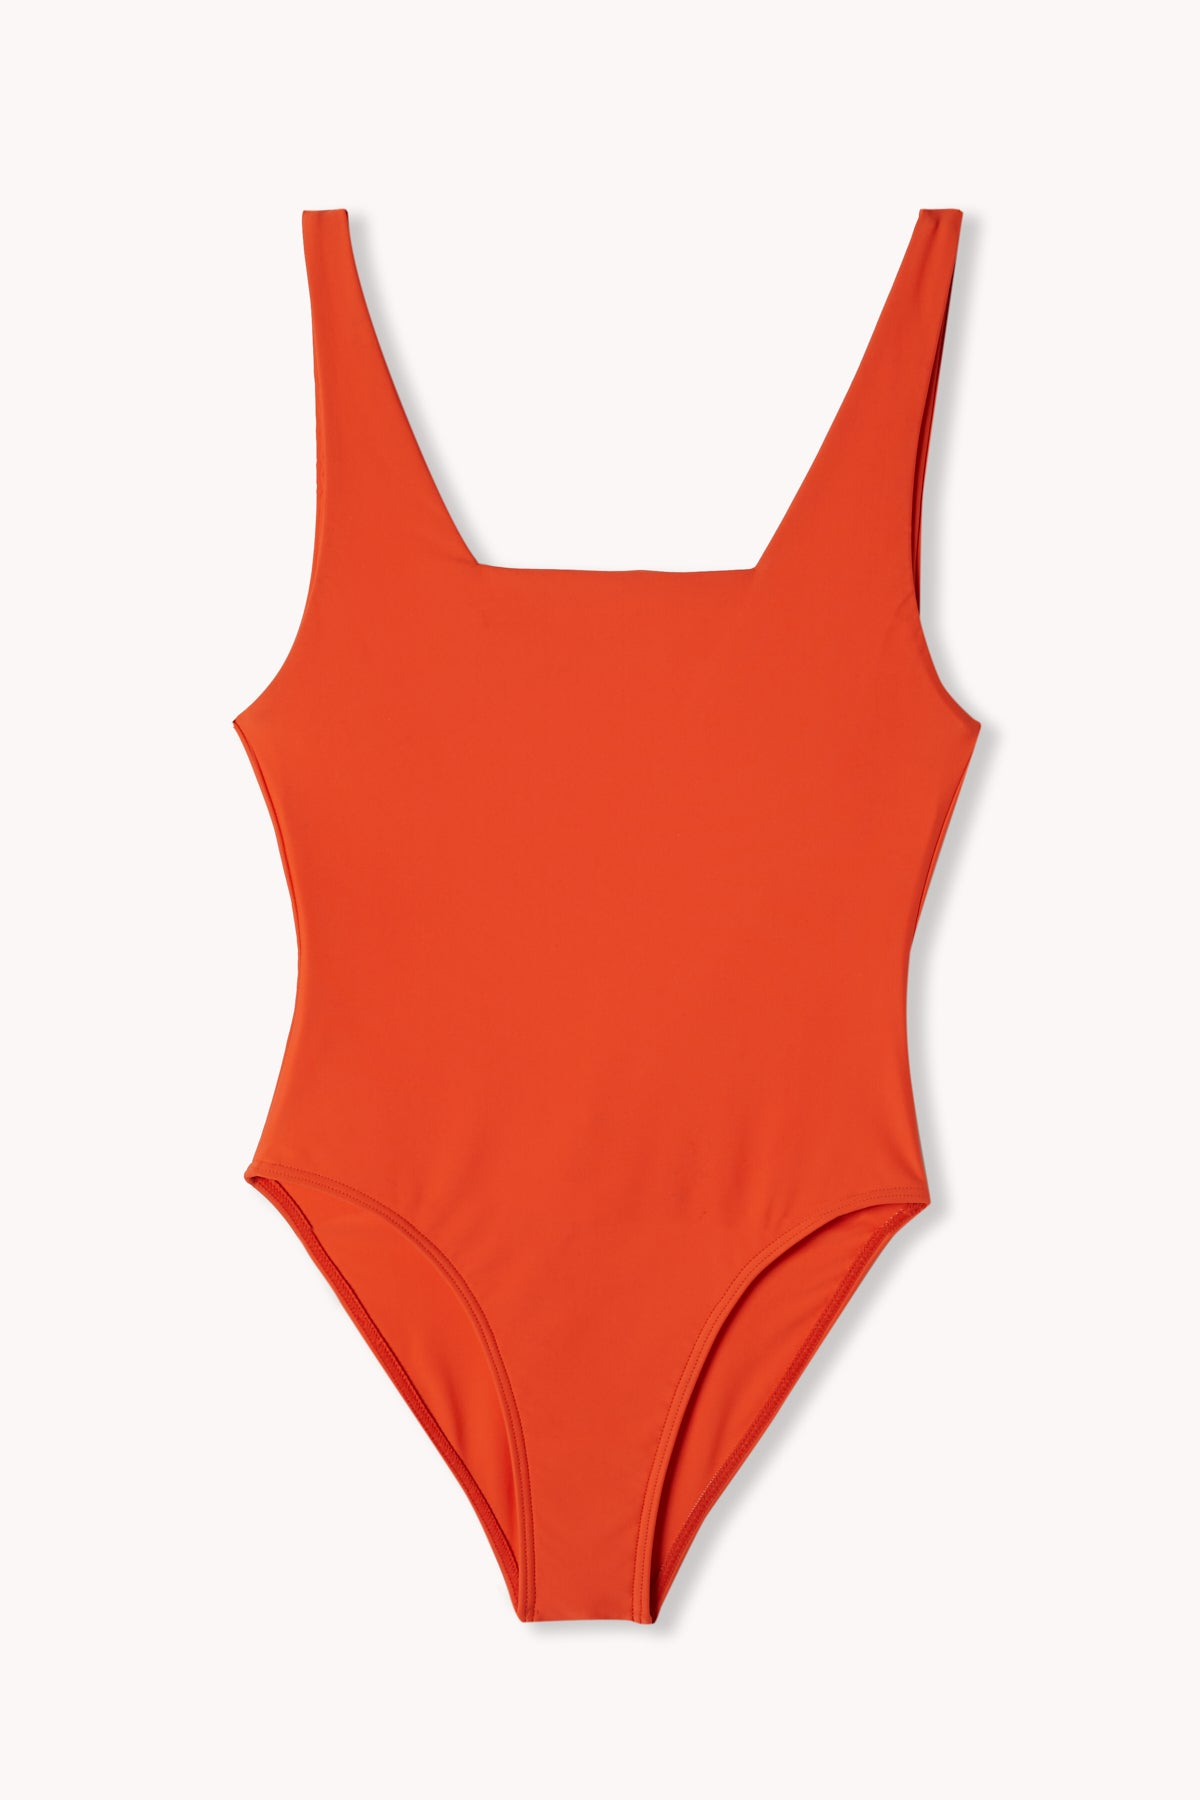 Orange one piece